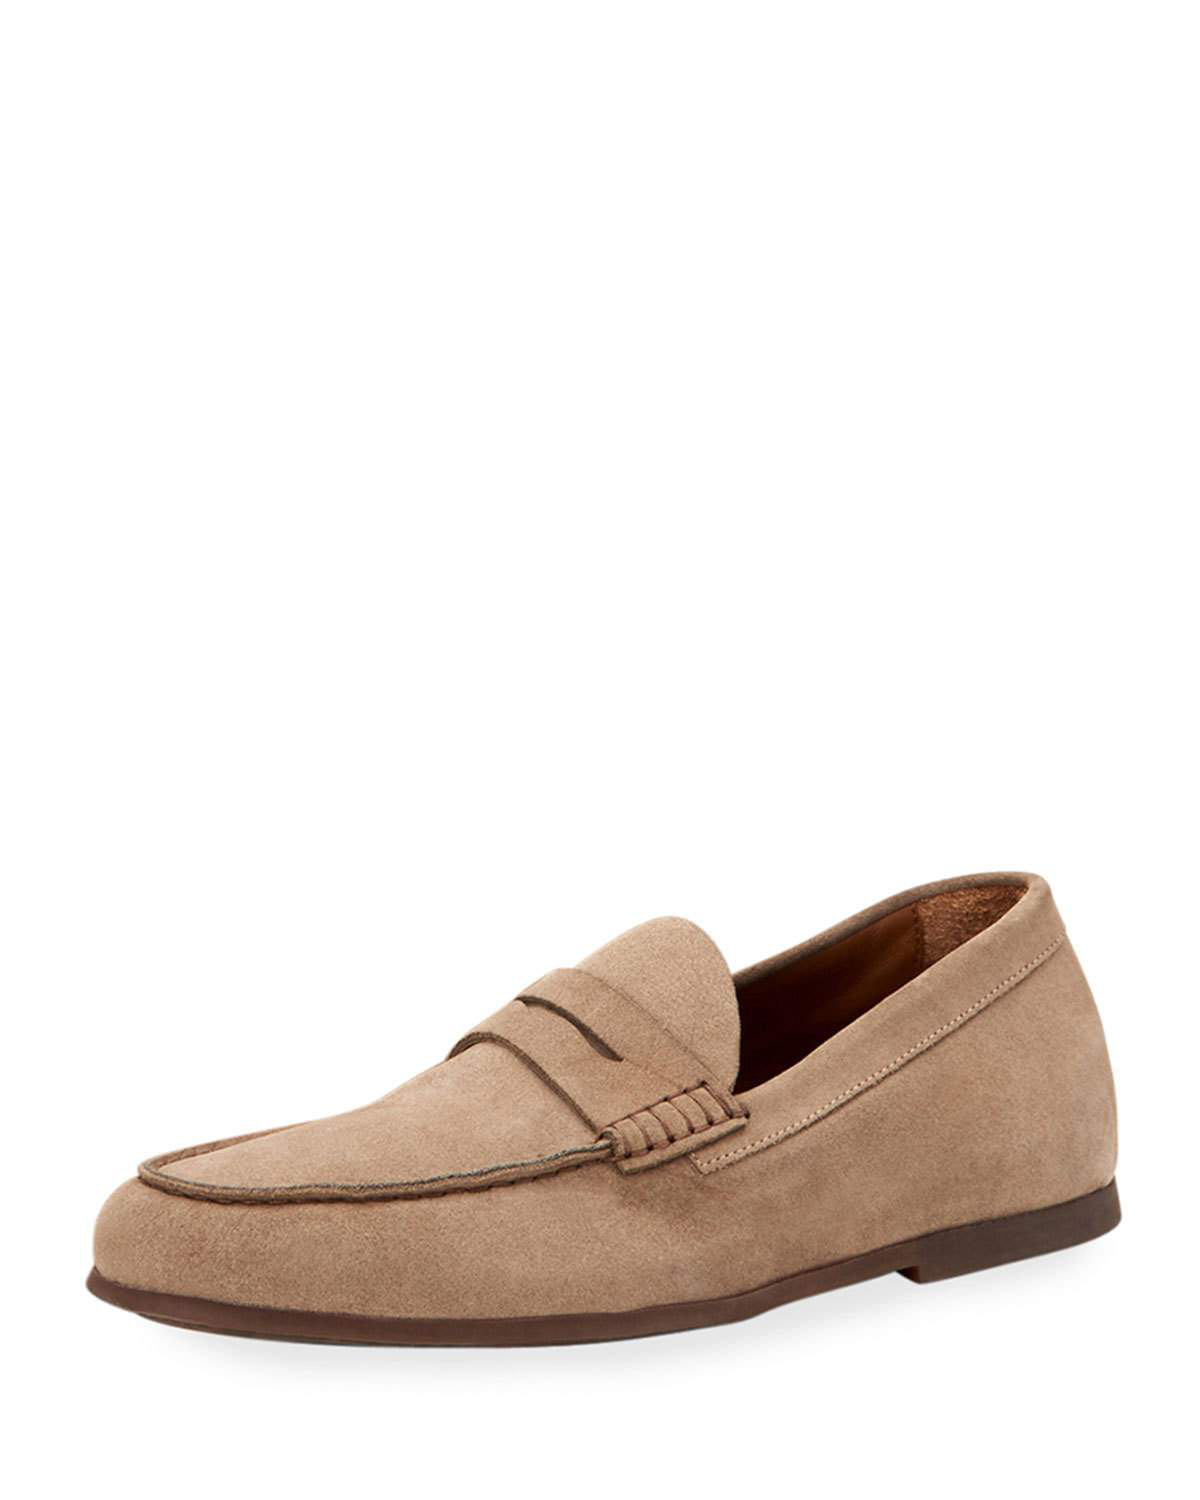 5c479be4c73 Aquatalia loafers shoes in suede. Round apron toe. Penny keeper strap  across vamp. Slip-on style. Leather lining. Rubber sole. Leather padded  insole.